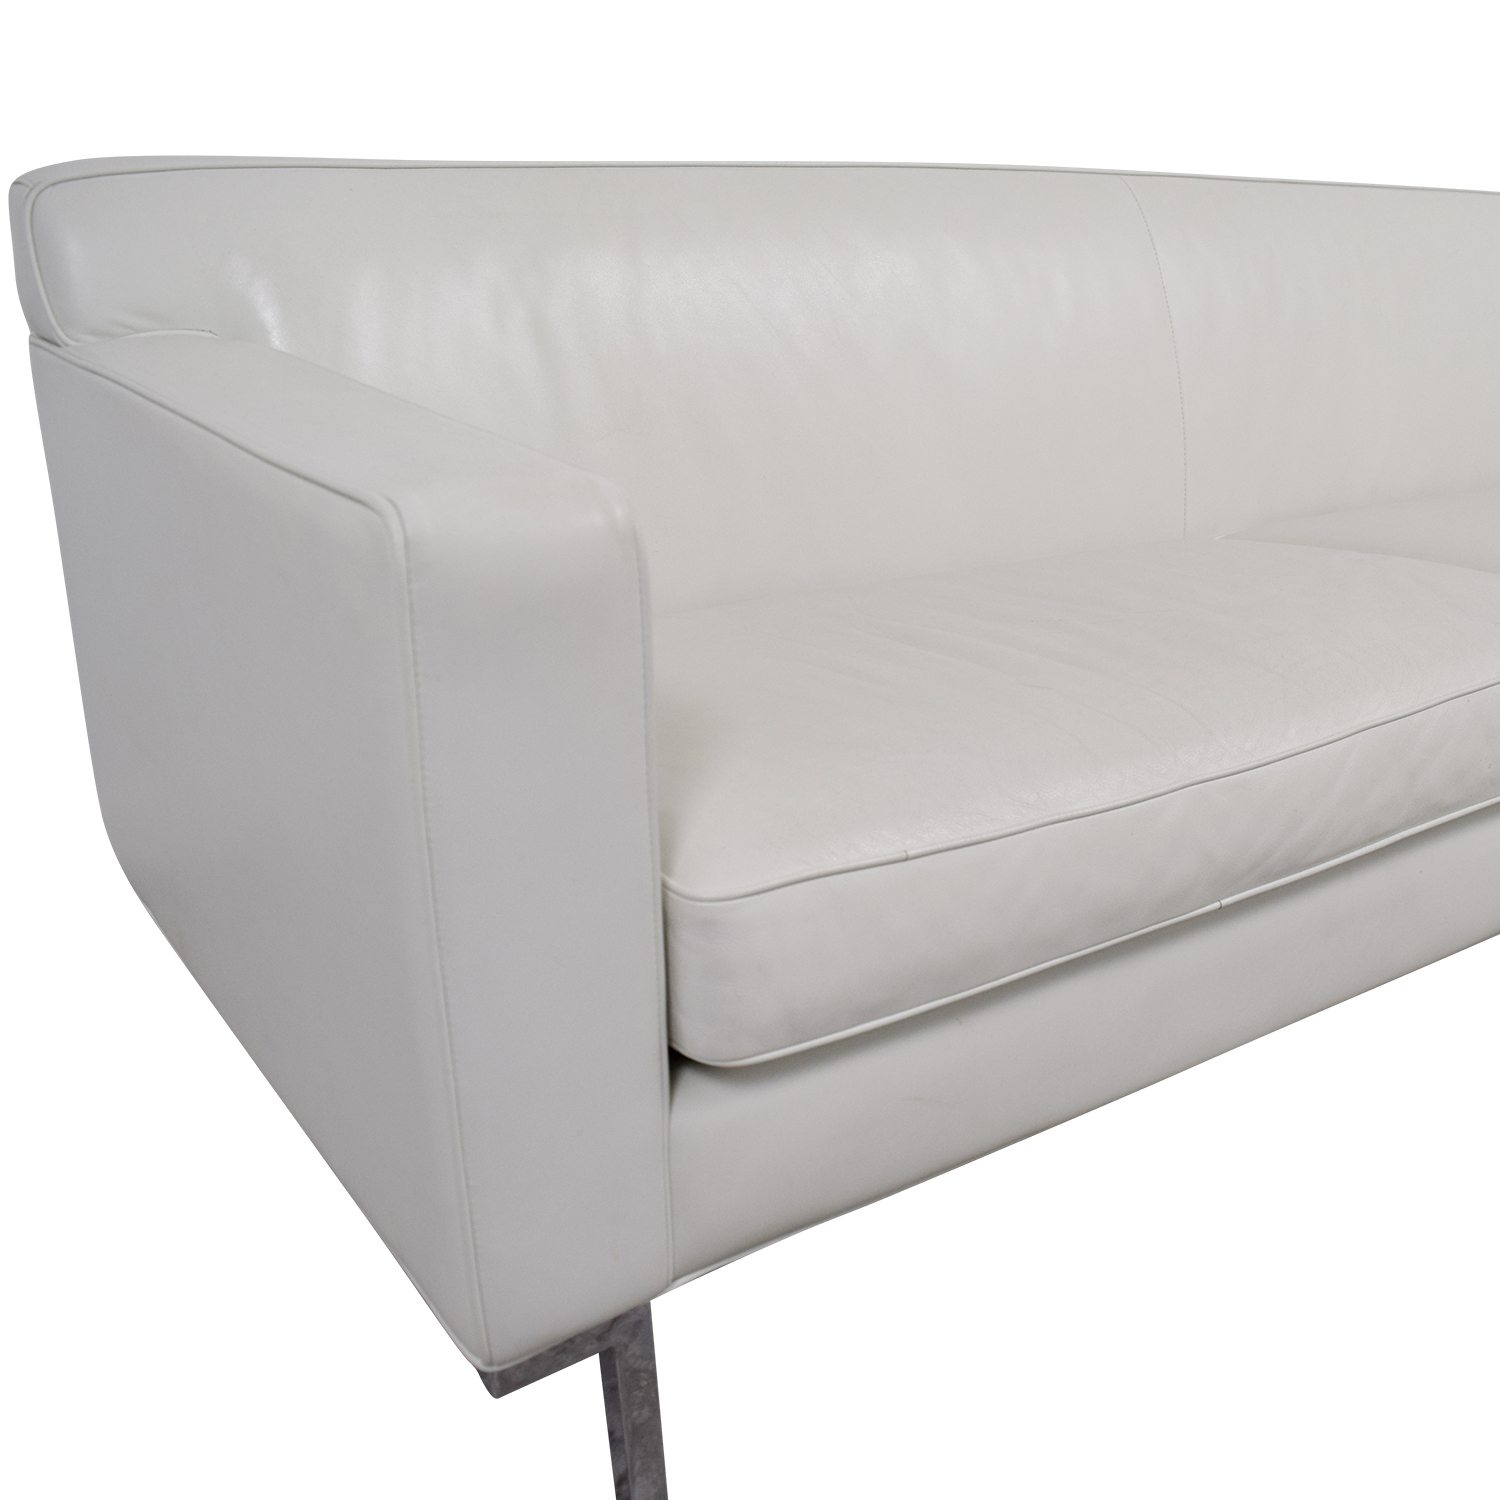 Design Within Reach Design Within Reach White Leather Couch coupon